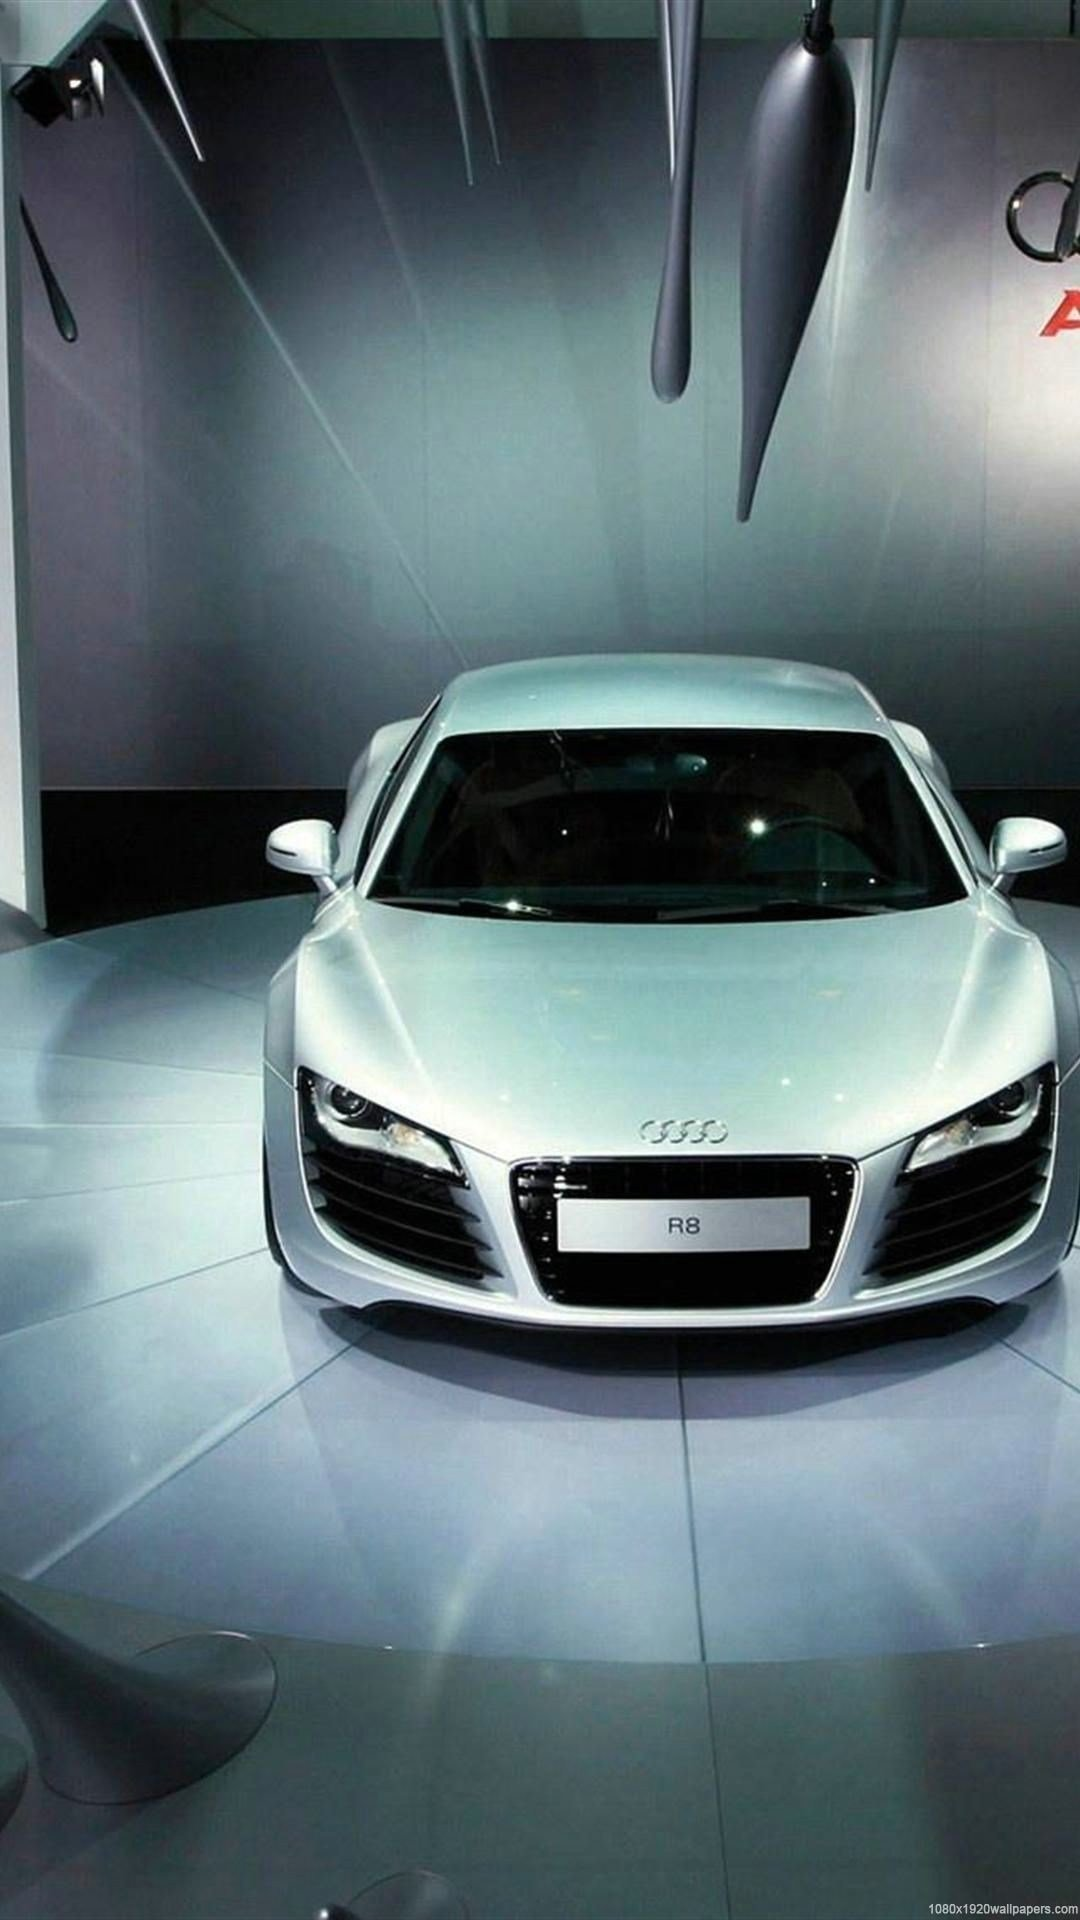 Latest Cool Car Wallpapers Hd 1080P 72 Images Free Download